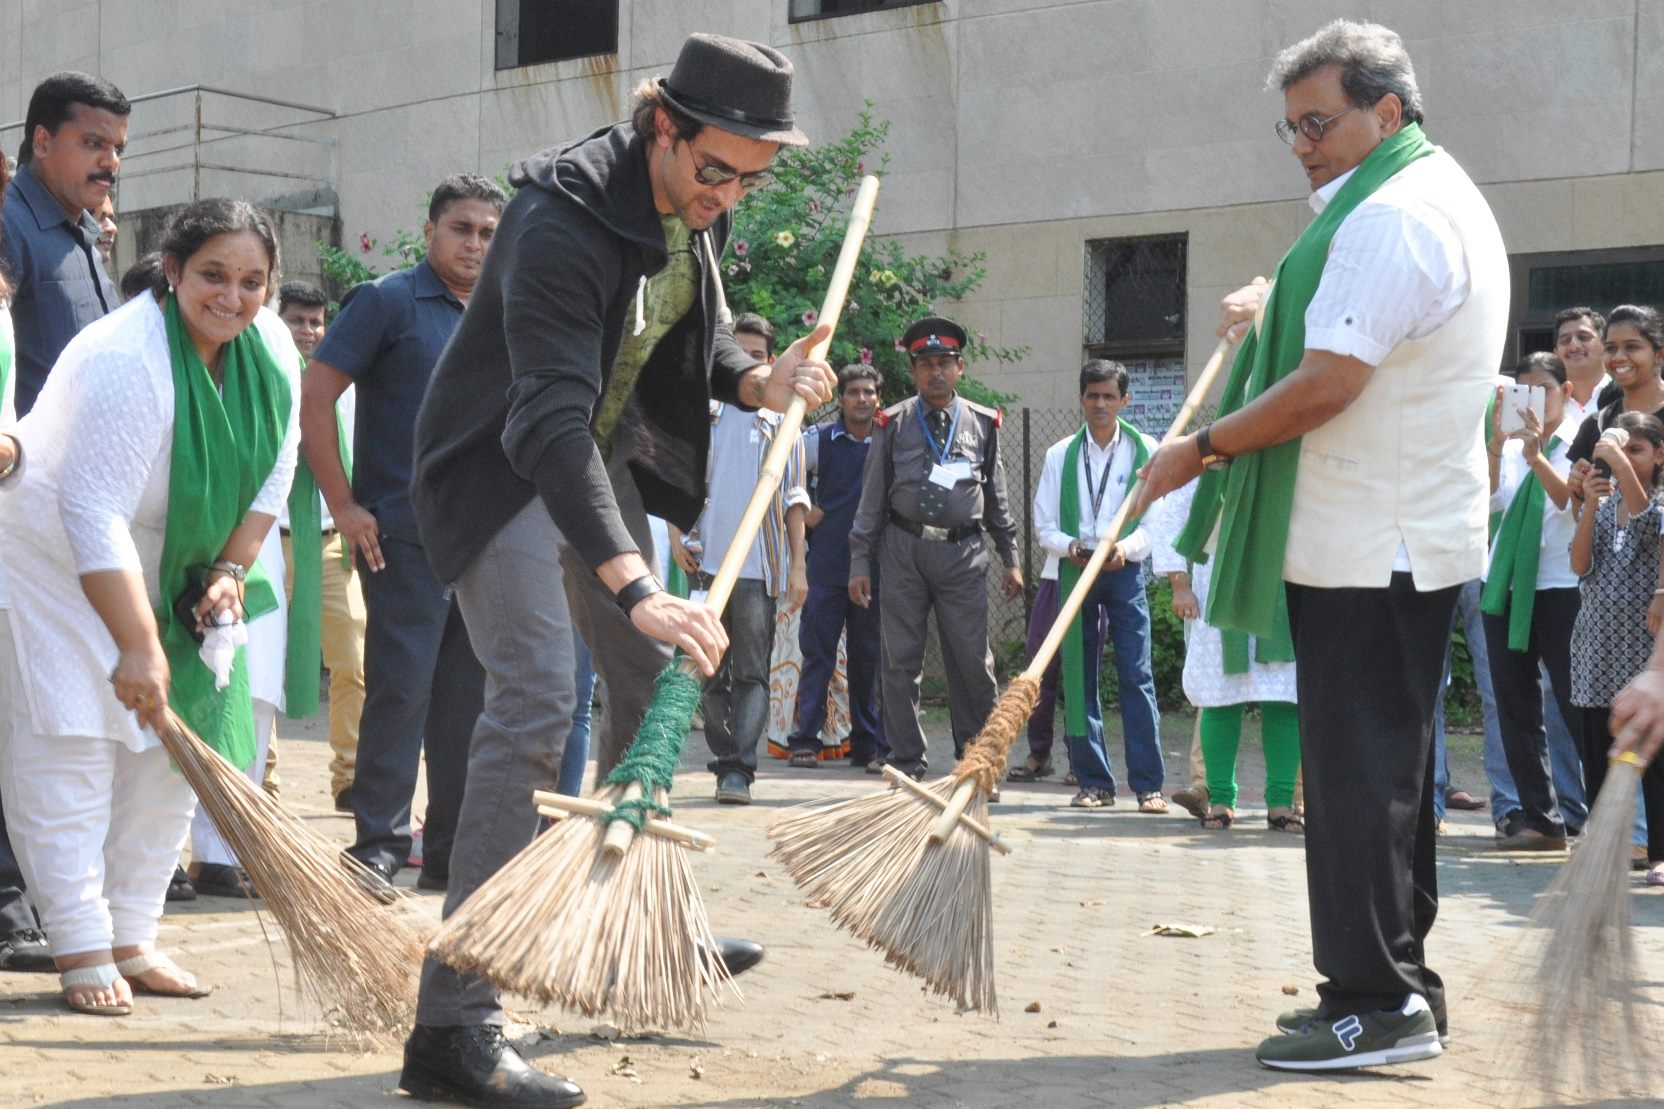 hruthik roshan on swachh bharat mission